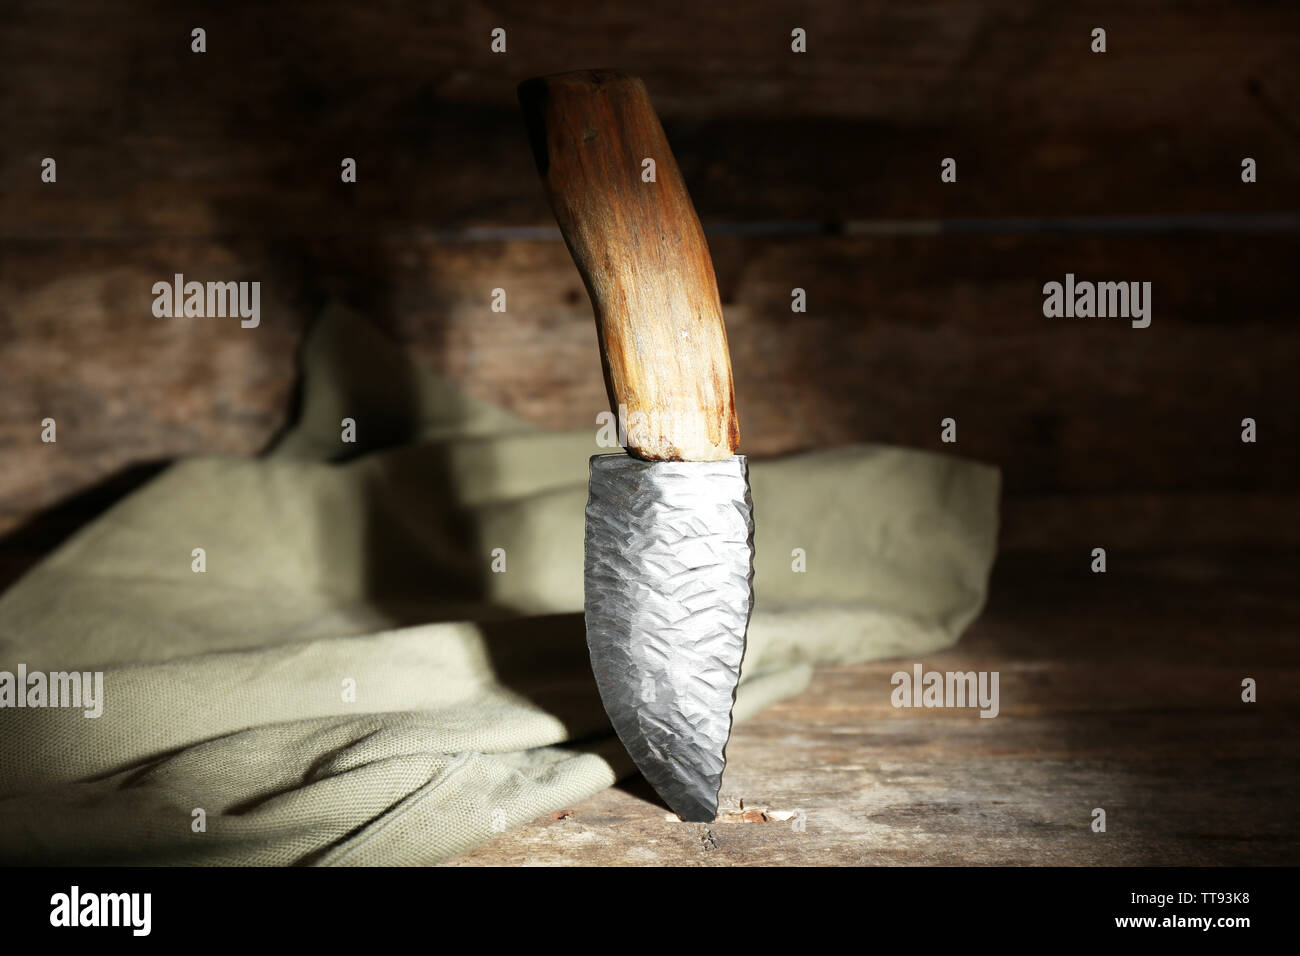 Hunting knife and sackcloth on wooden background - Stock Image